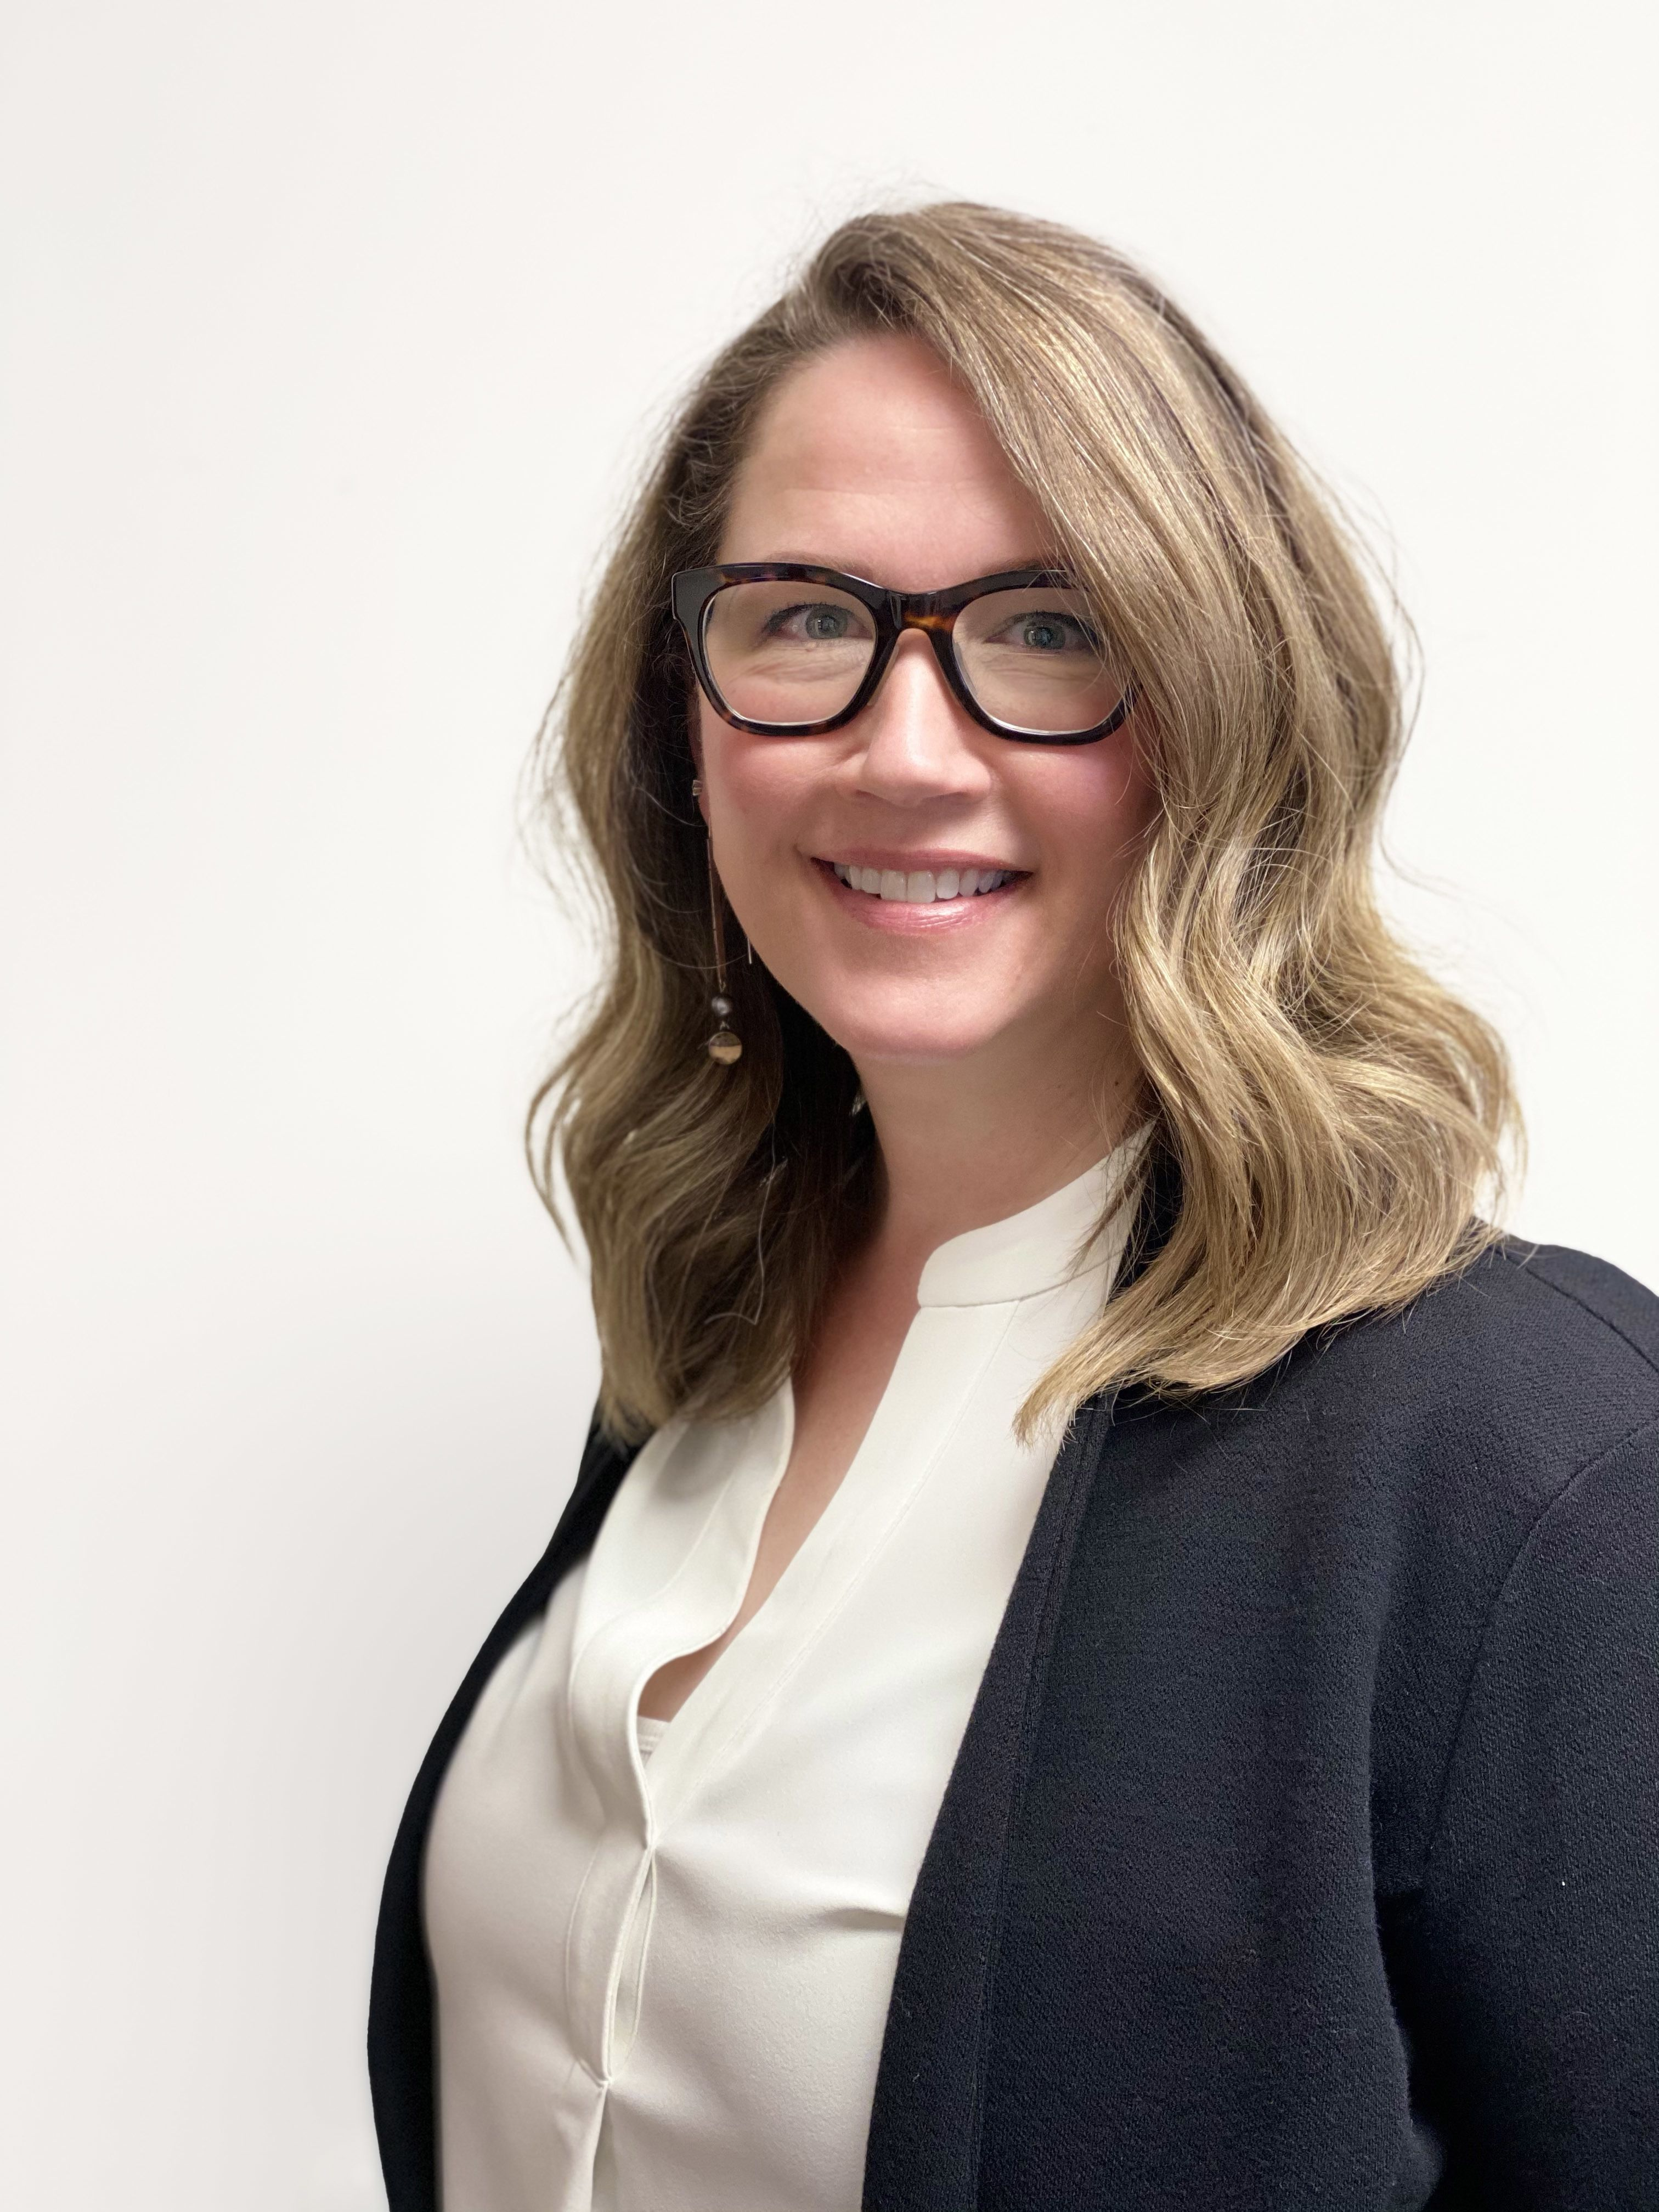 Jen Bauer, One Vision's Chief Operating Officer